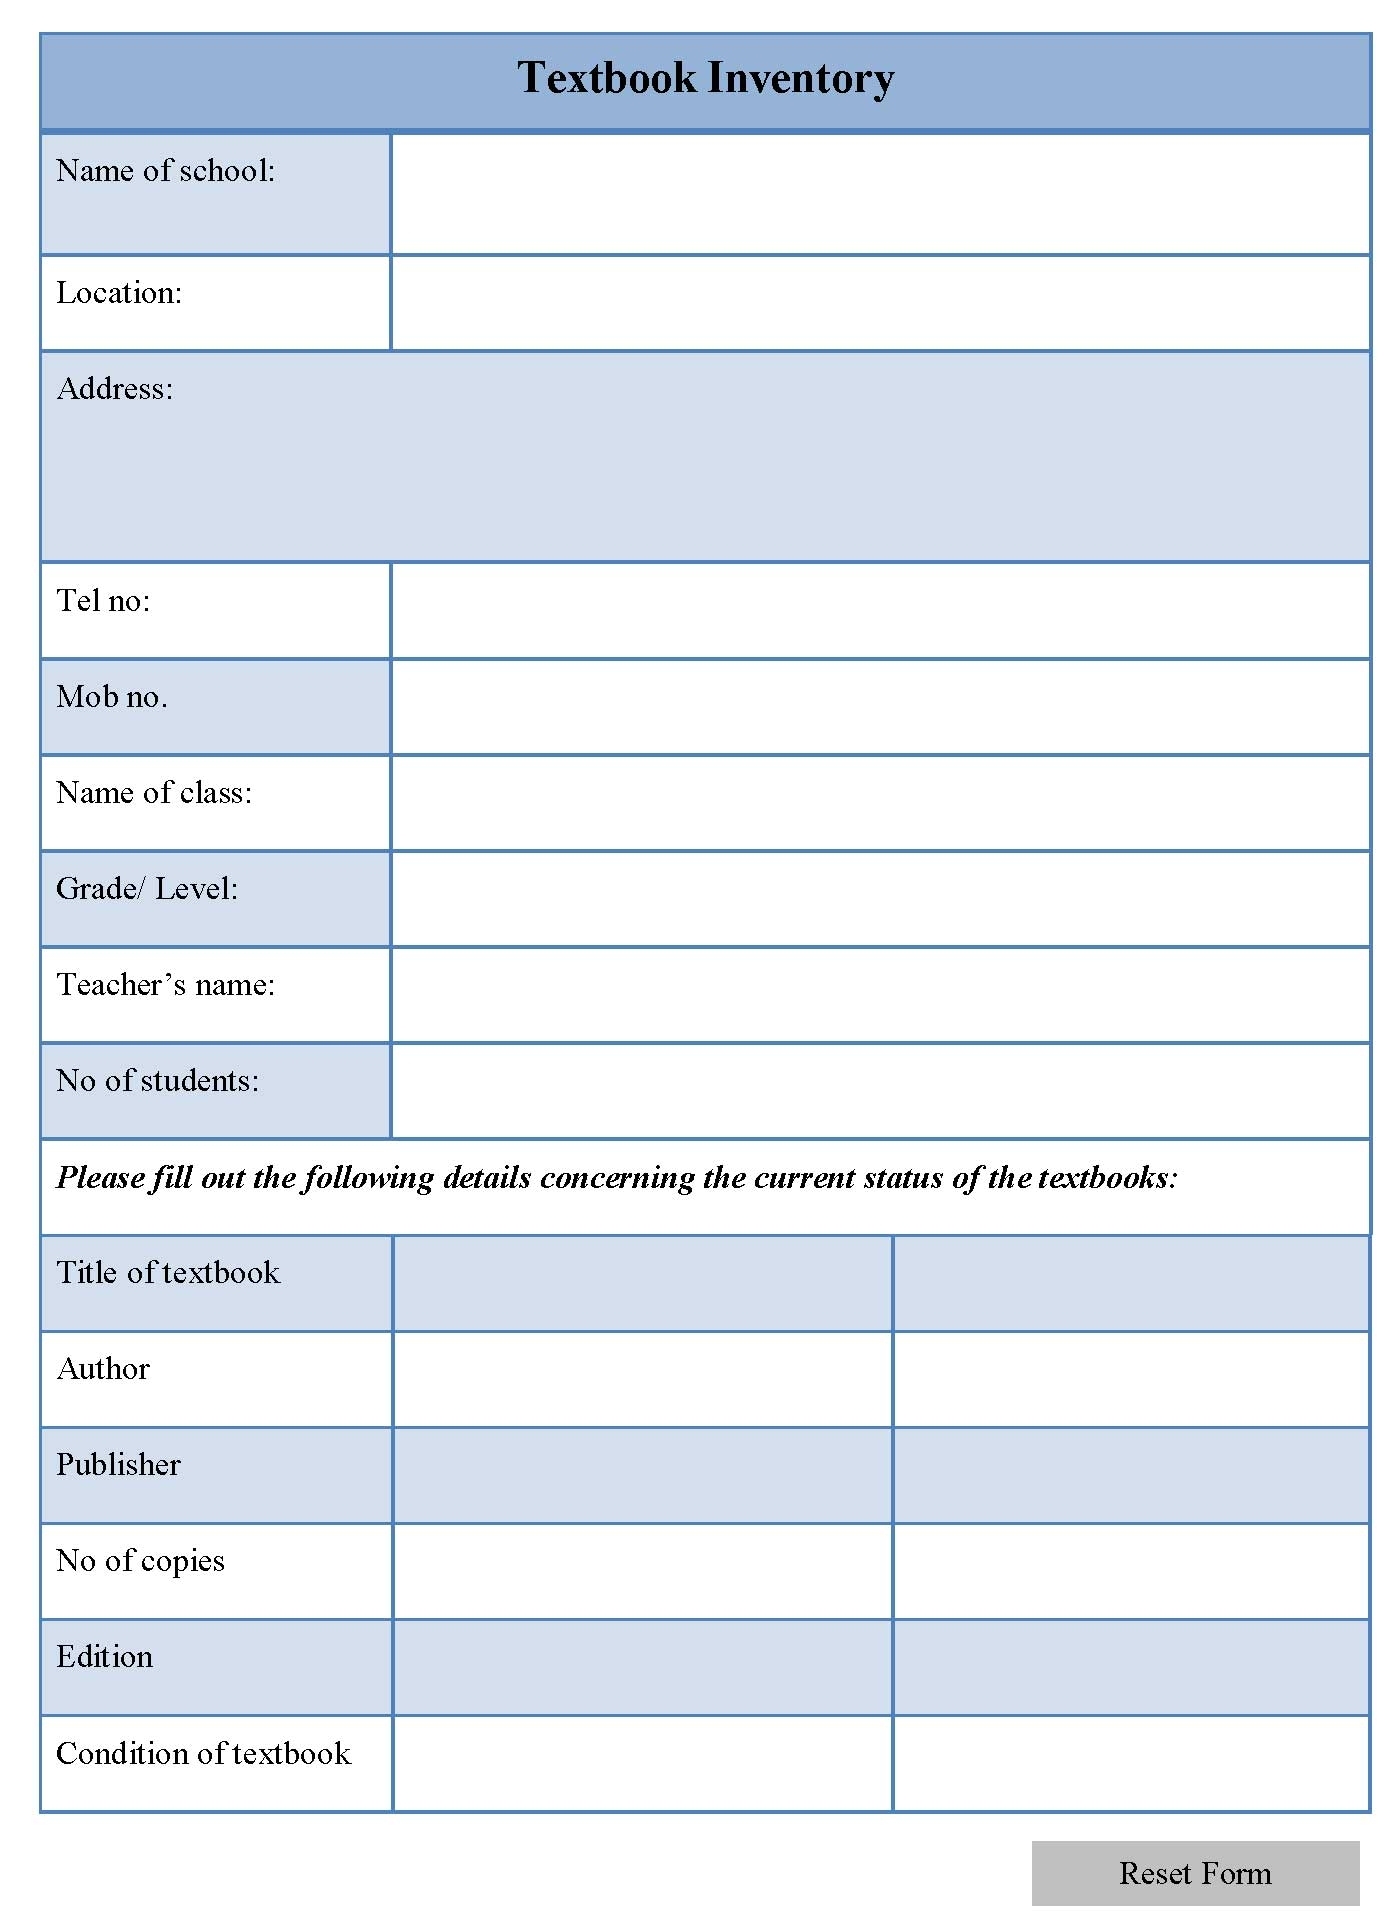 Textbook Inventory Form Editable Forms